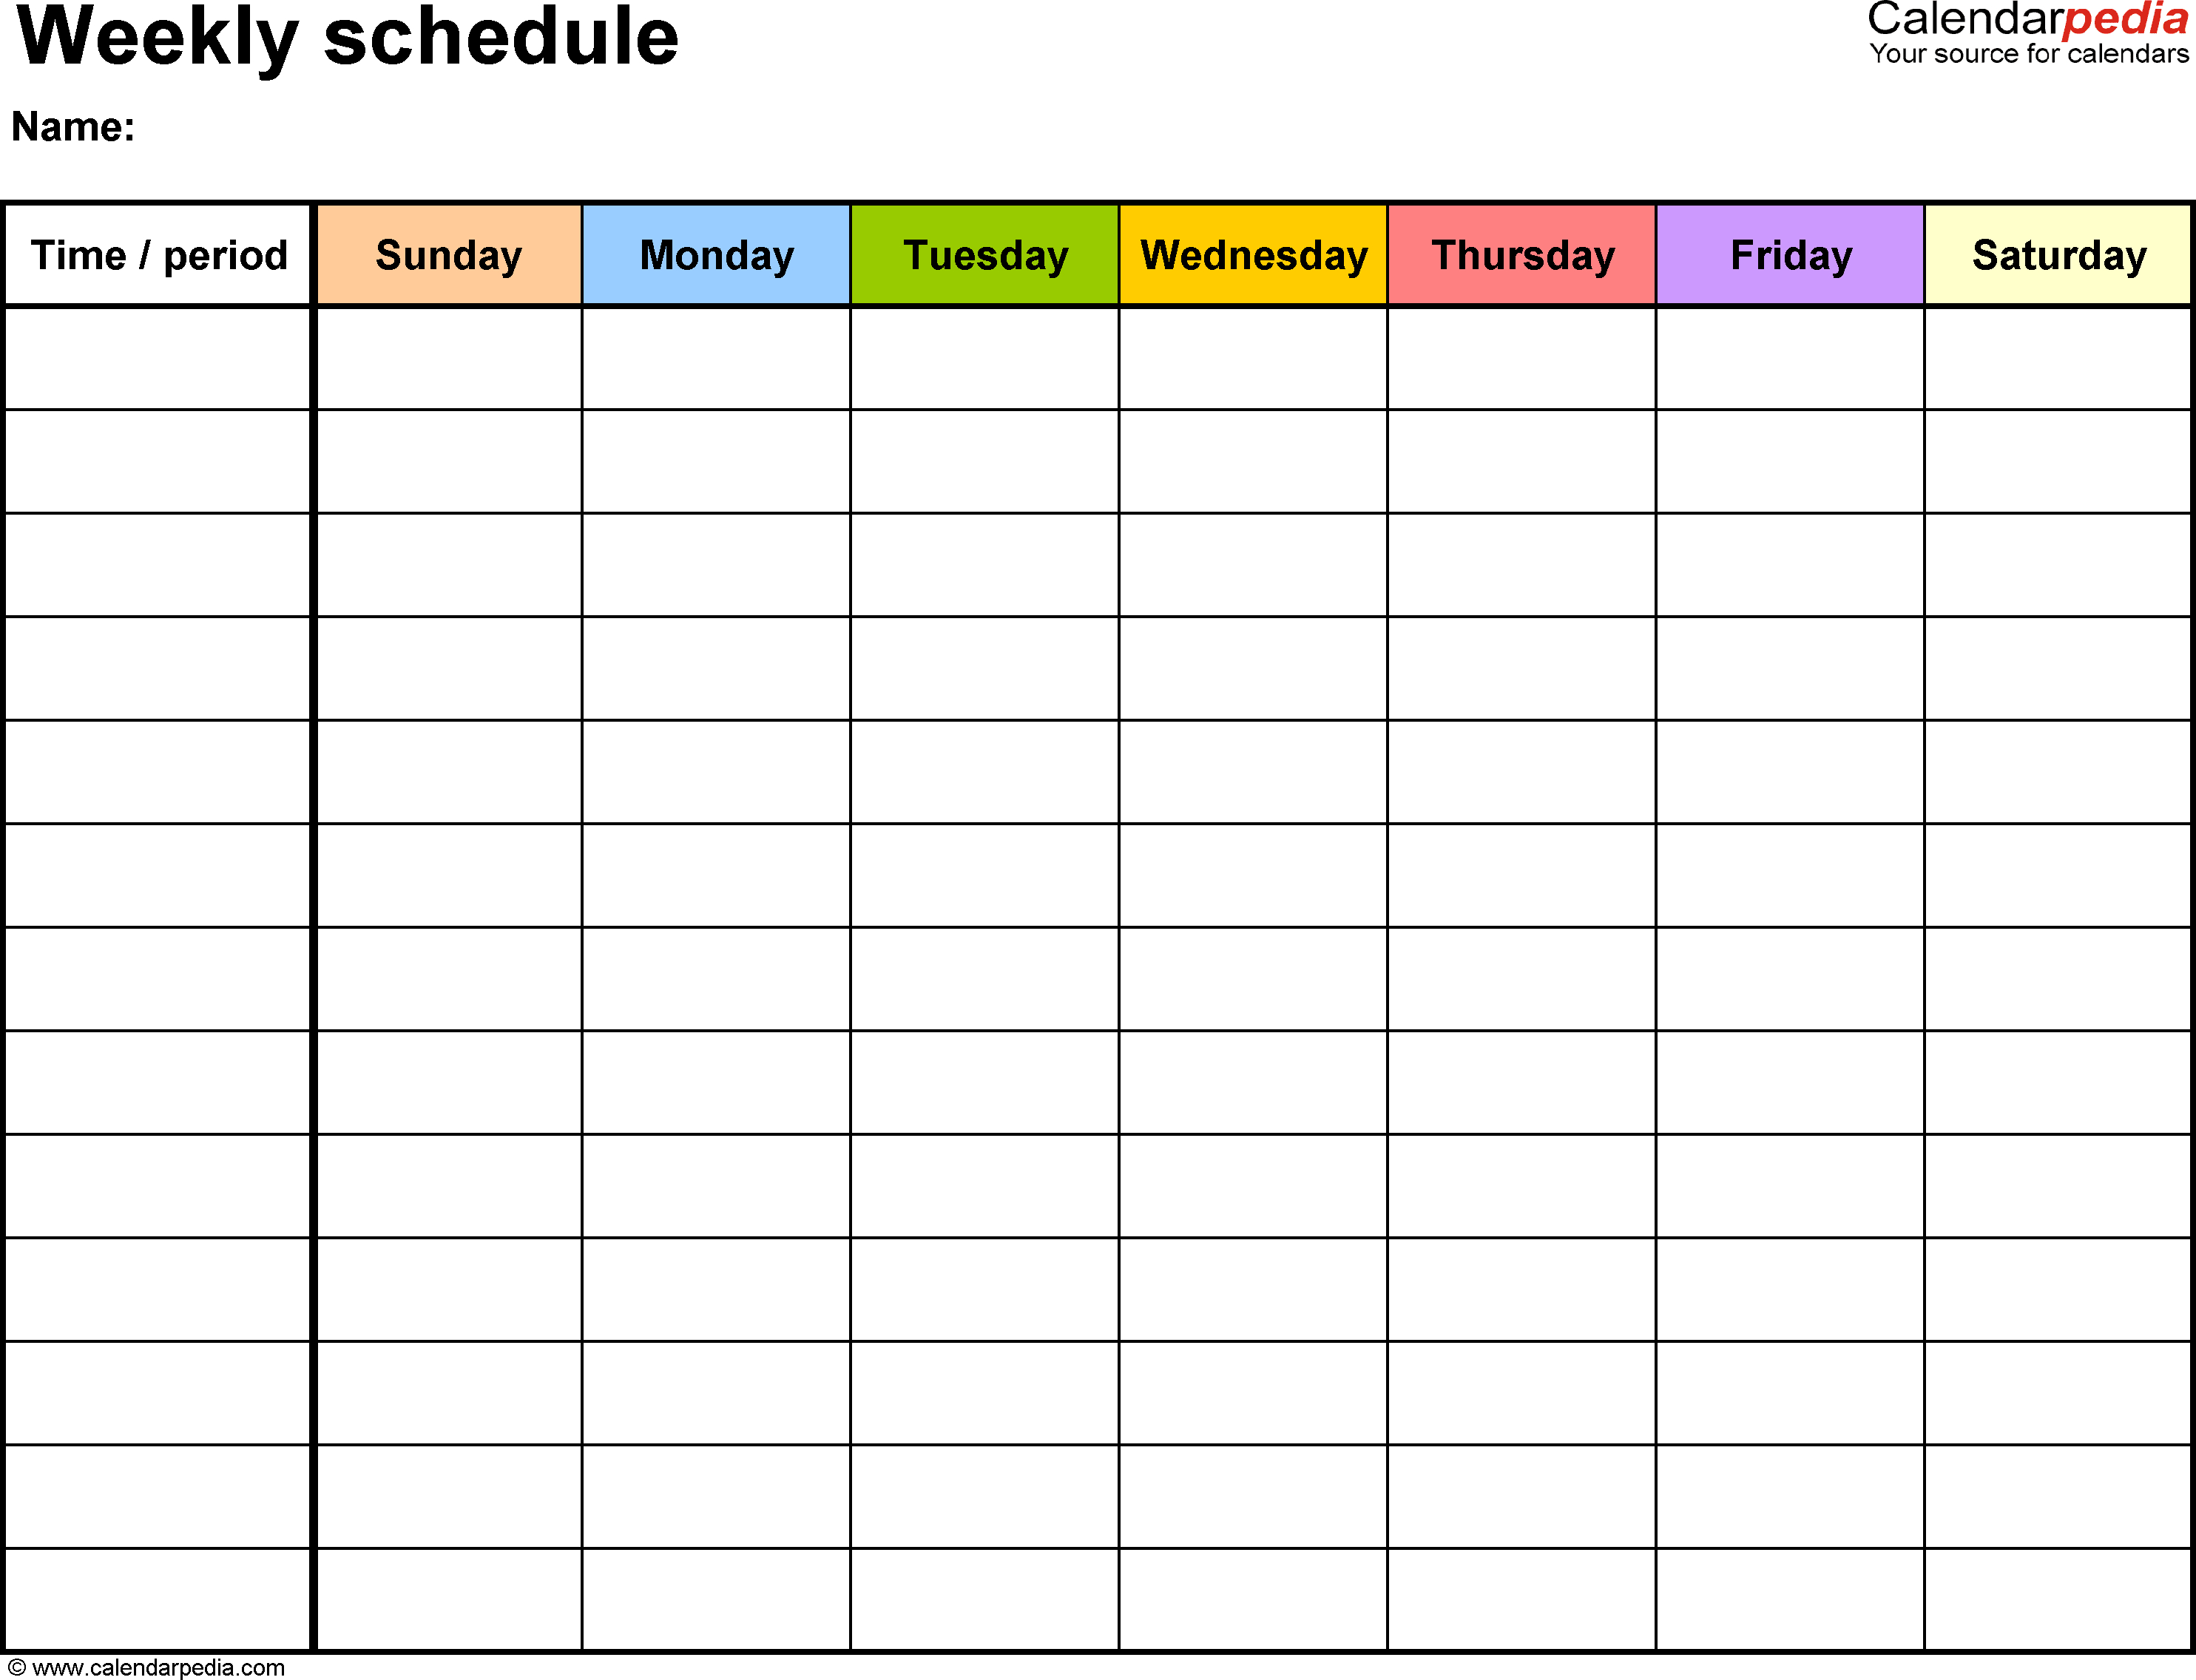 Free Weekly Schedule Templates For Excel – 18 Templates Saturday To Friday Weekly Calendar